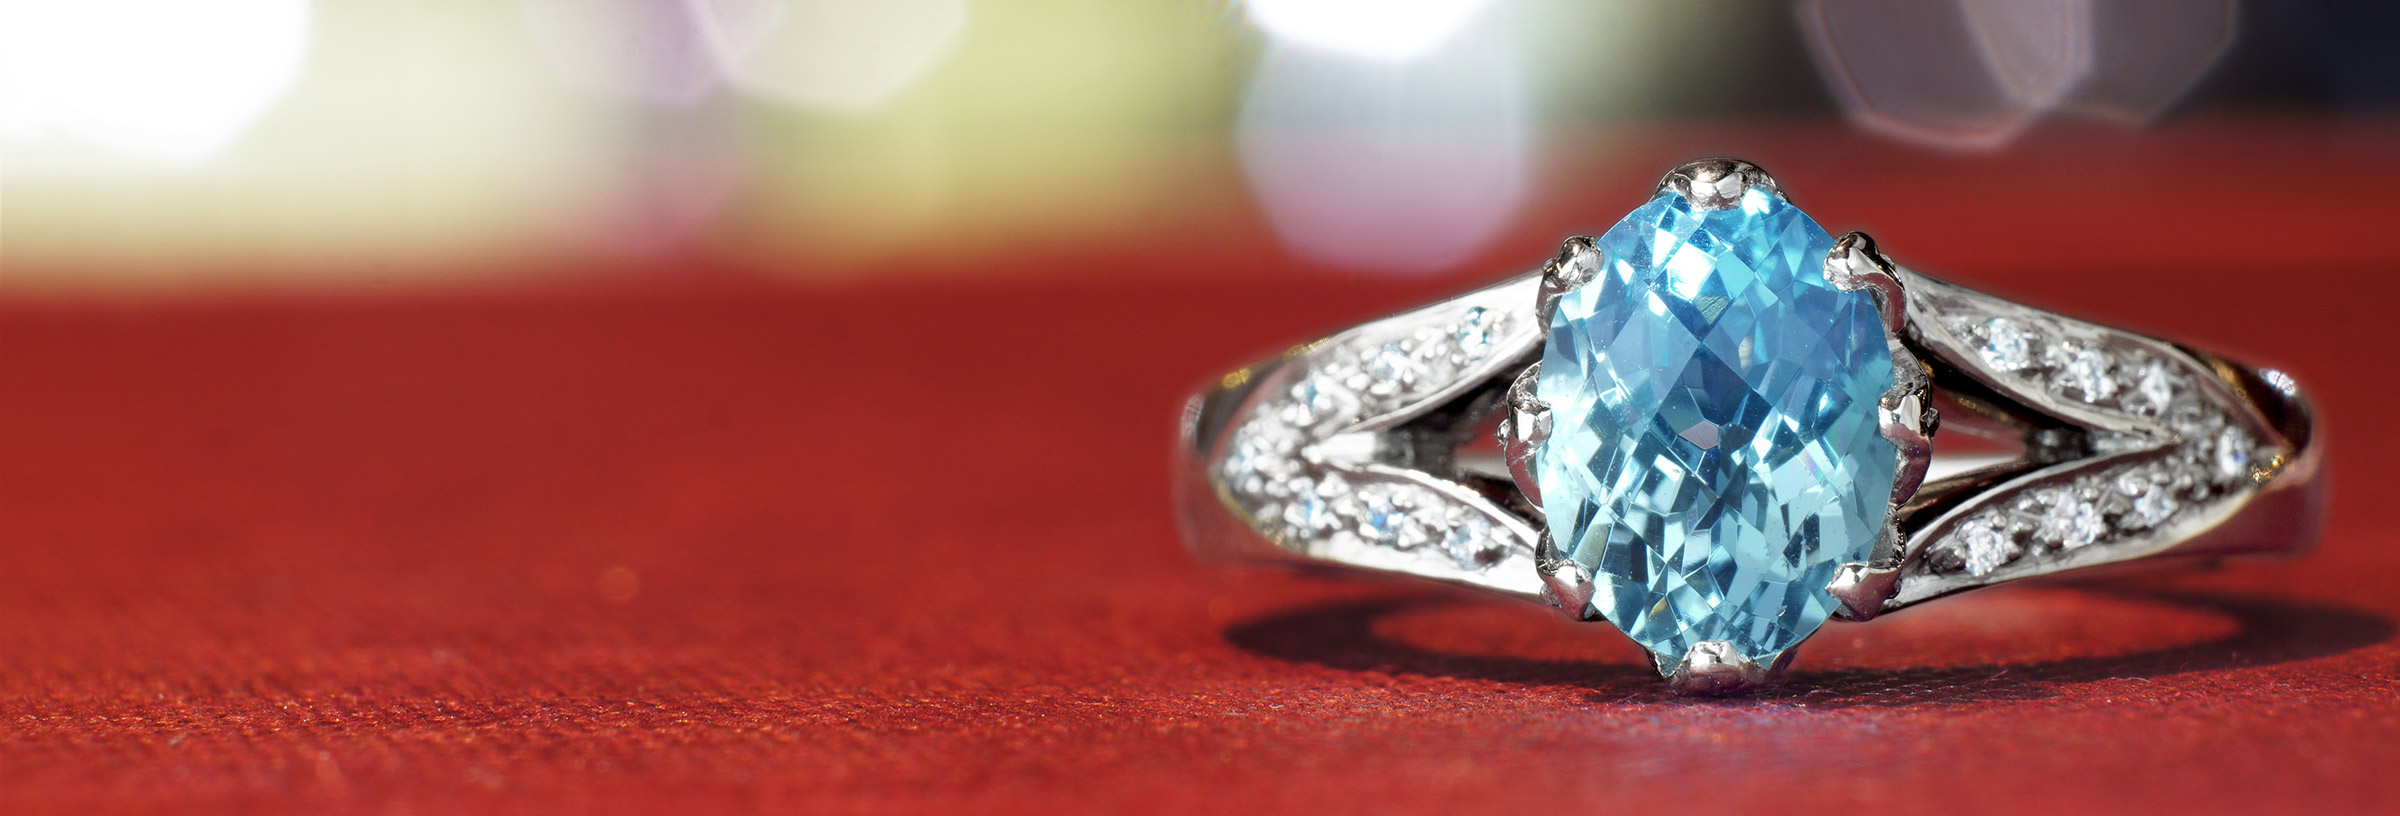 Vintage floral inspired aquamarine and diamond engagement ring